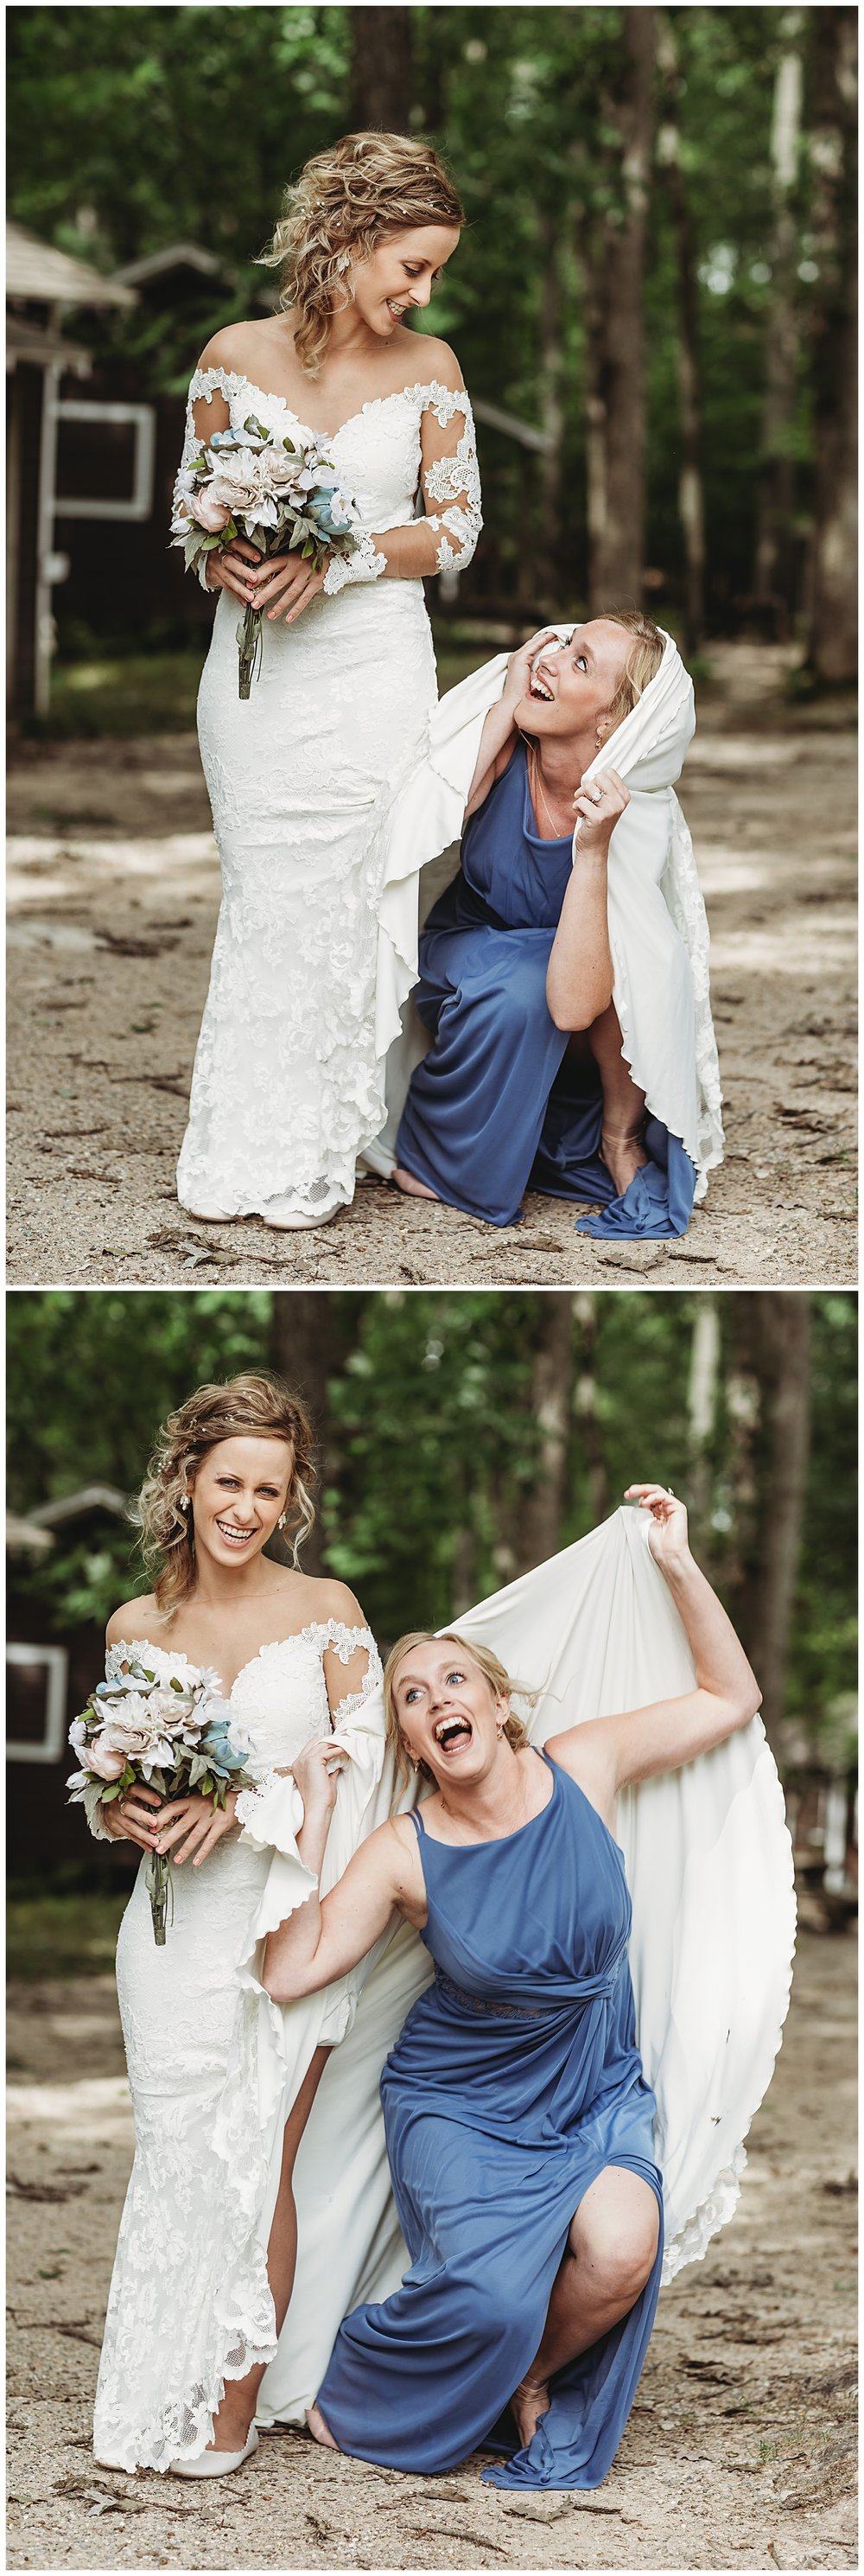 This right here… - is why I LOVE Brides like Sydney. This photo means so much more. This is her sister in law and at her wedding, Sydney did the same under her dress so it HAD to be done when Sydney got married. I just so happened to catch that AMAZING (and funny) last shot. You can tell they were having a GREAT time!!